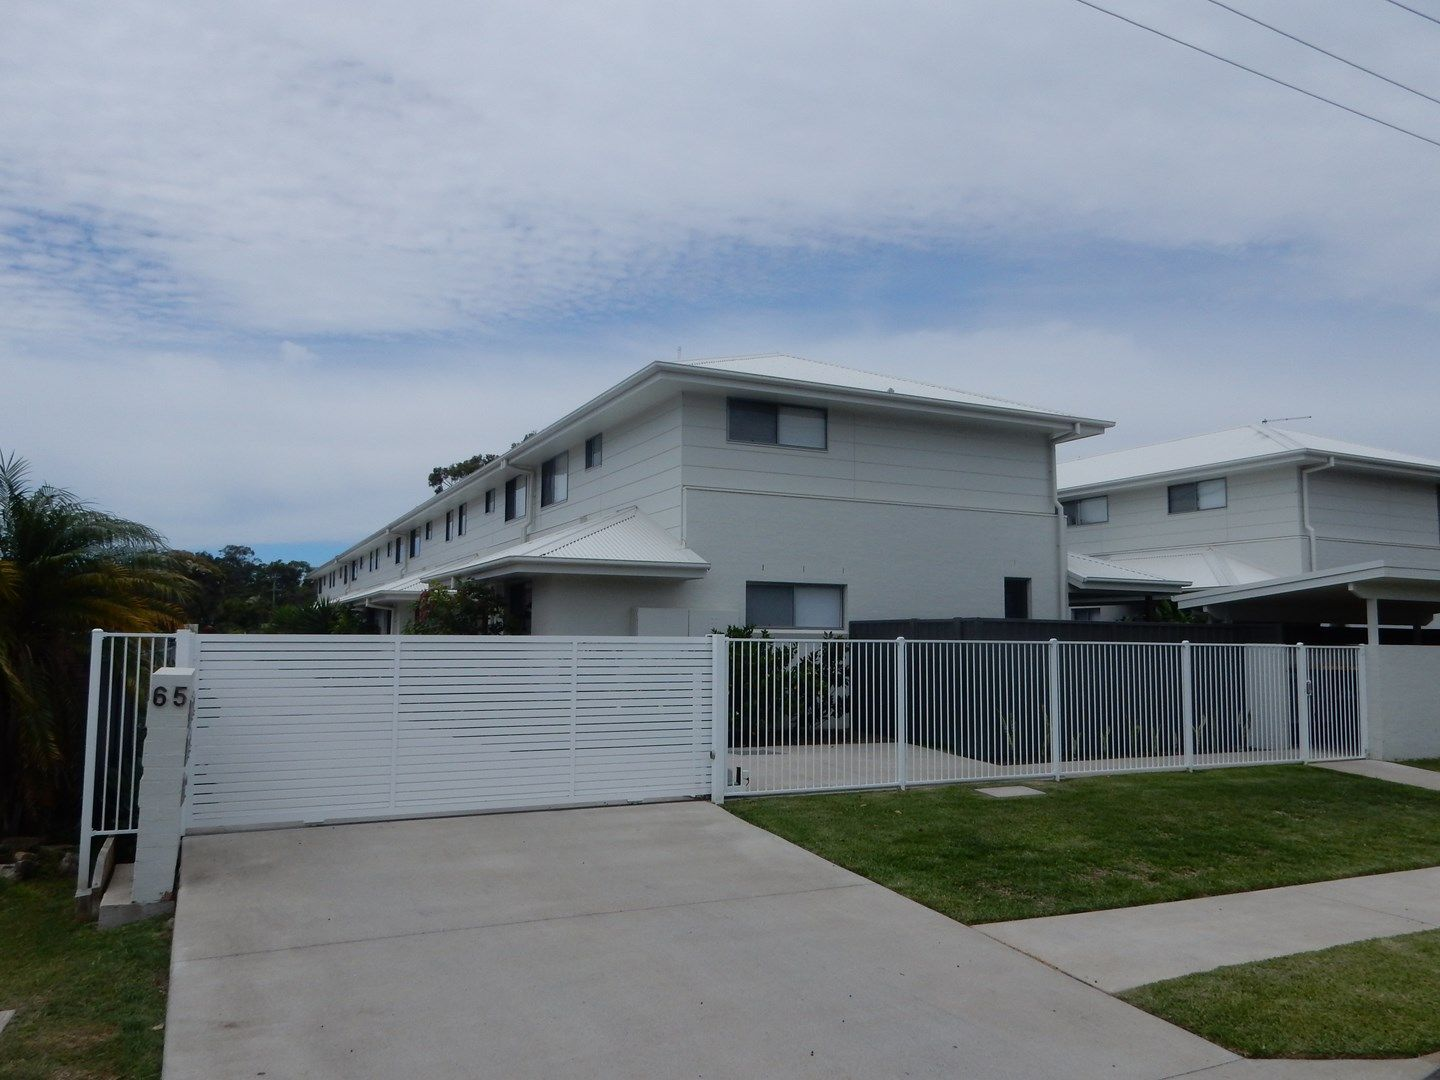 4/65-67 Boultwood Street, Coffs Harbour NSW 2450, Image 0